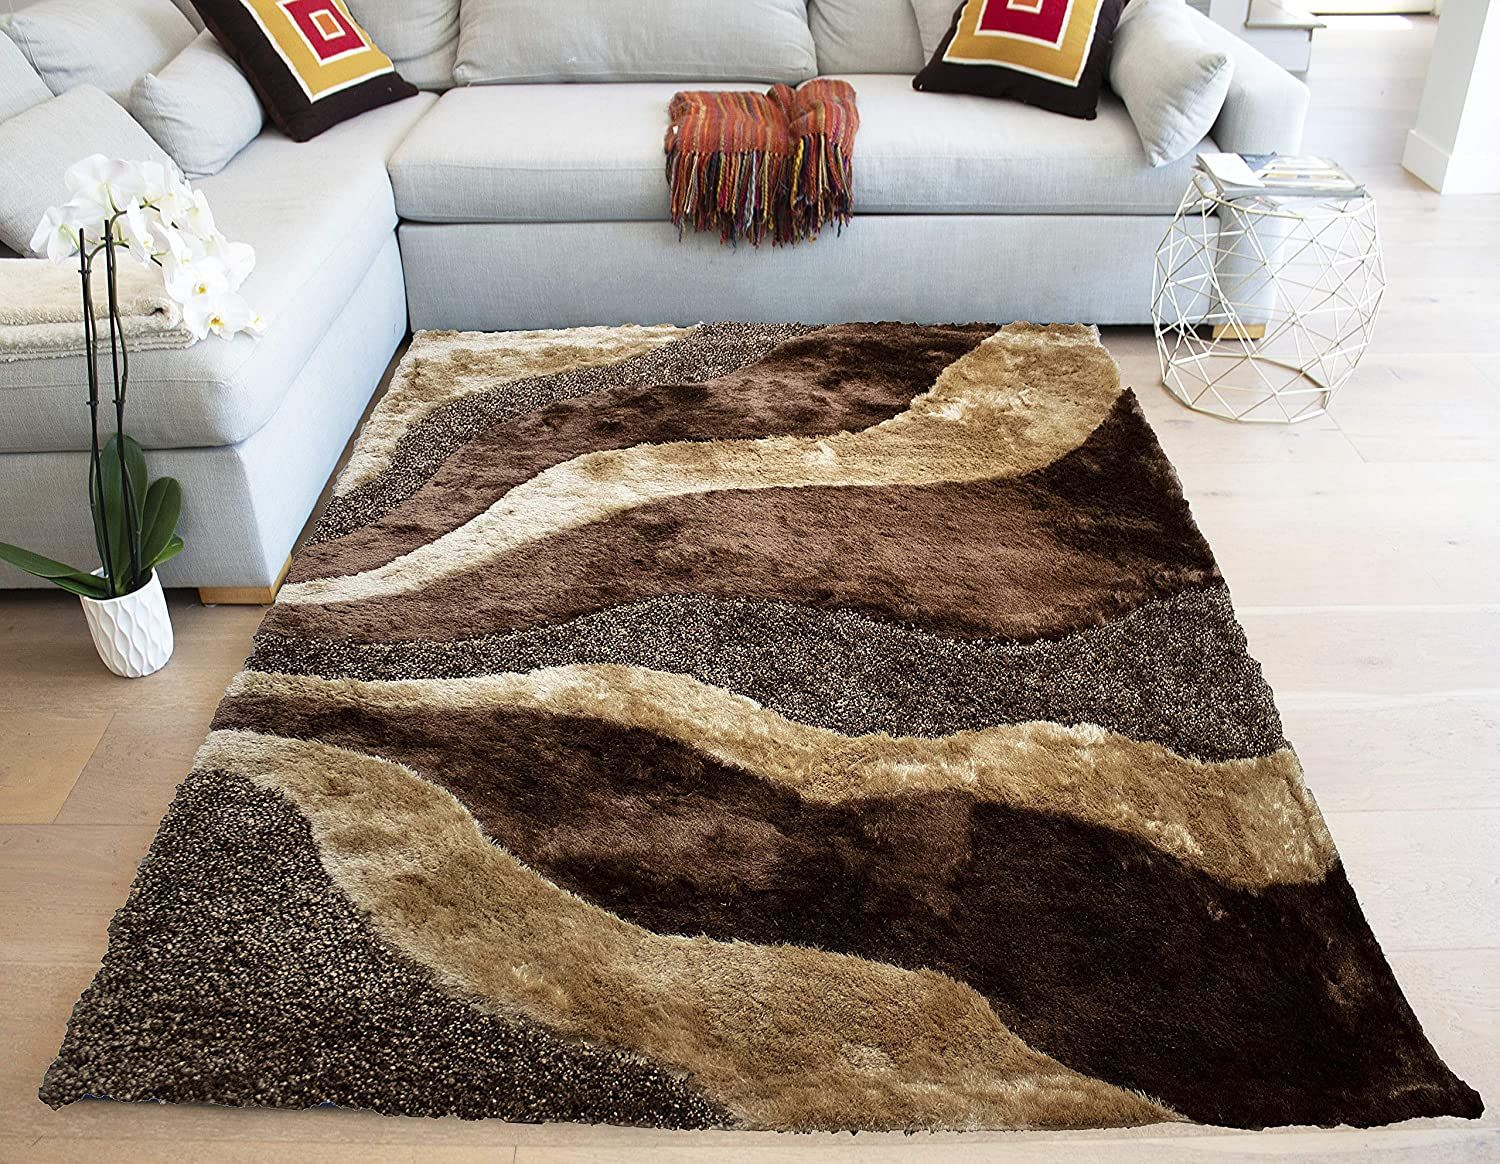 Rolex Shaggy Shag Collection Glamorous Plush Brown Beige Area Rug Carpet 8a X10a Feet Soft Plush Modern Contem Rugs On Carpet Brown Carpet Quality Area Rugs Center rugs for living room